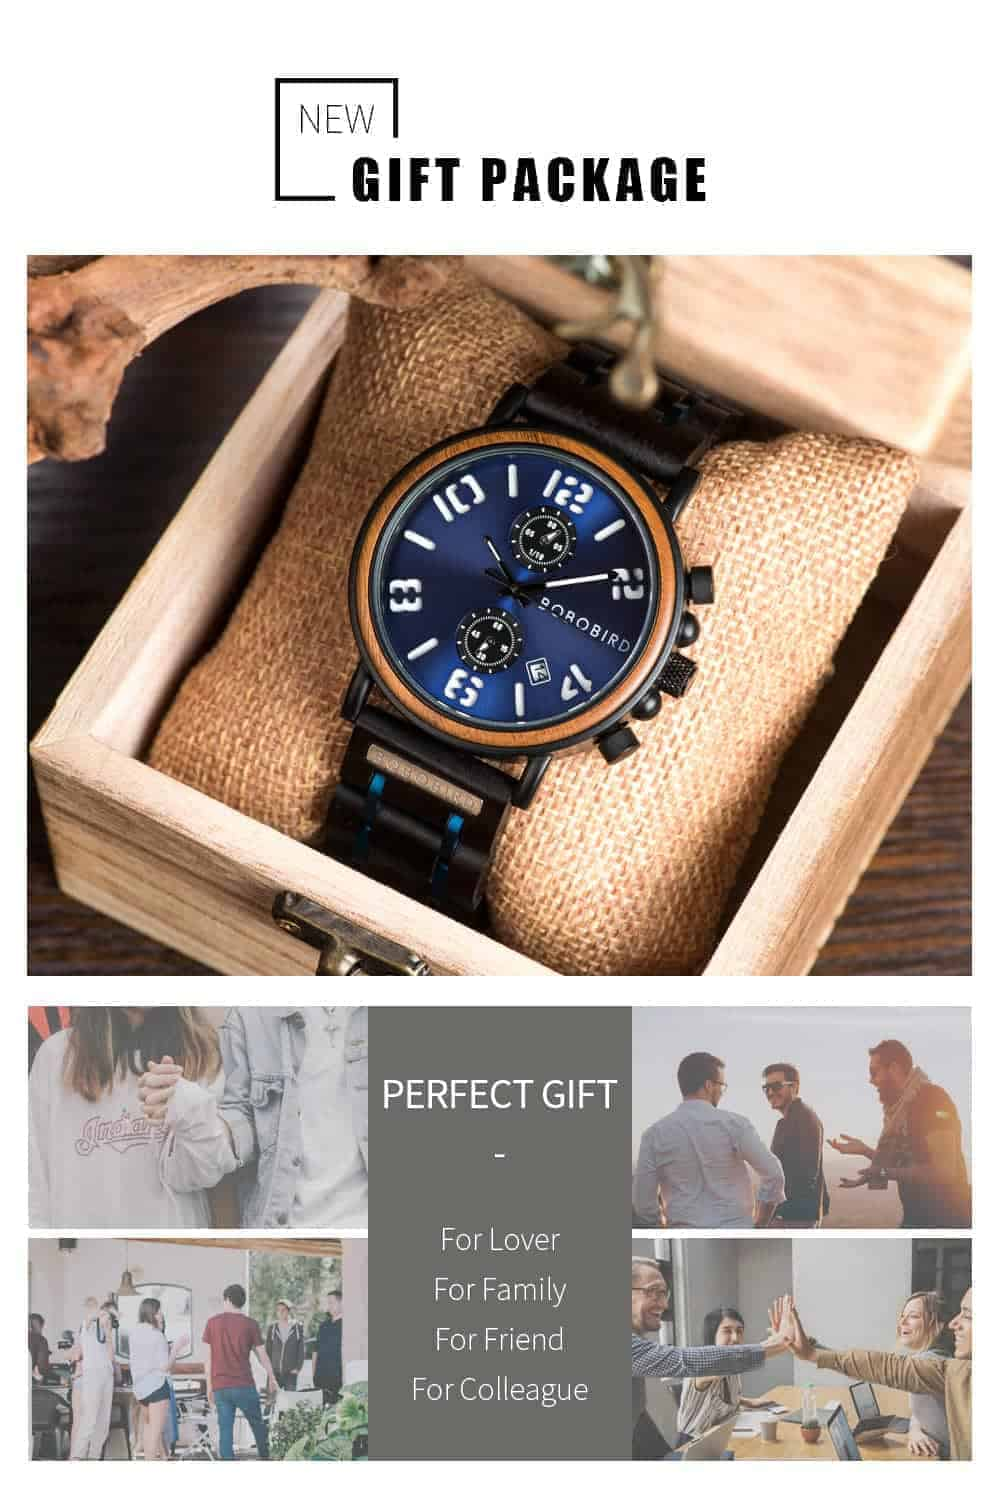 BOBO BIRD Wooden Watches S26 Series Product Details 10